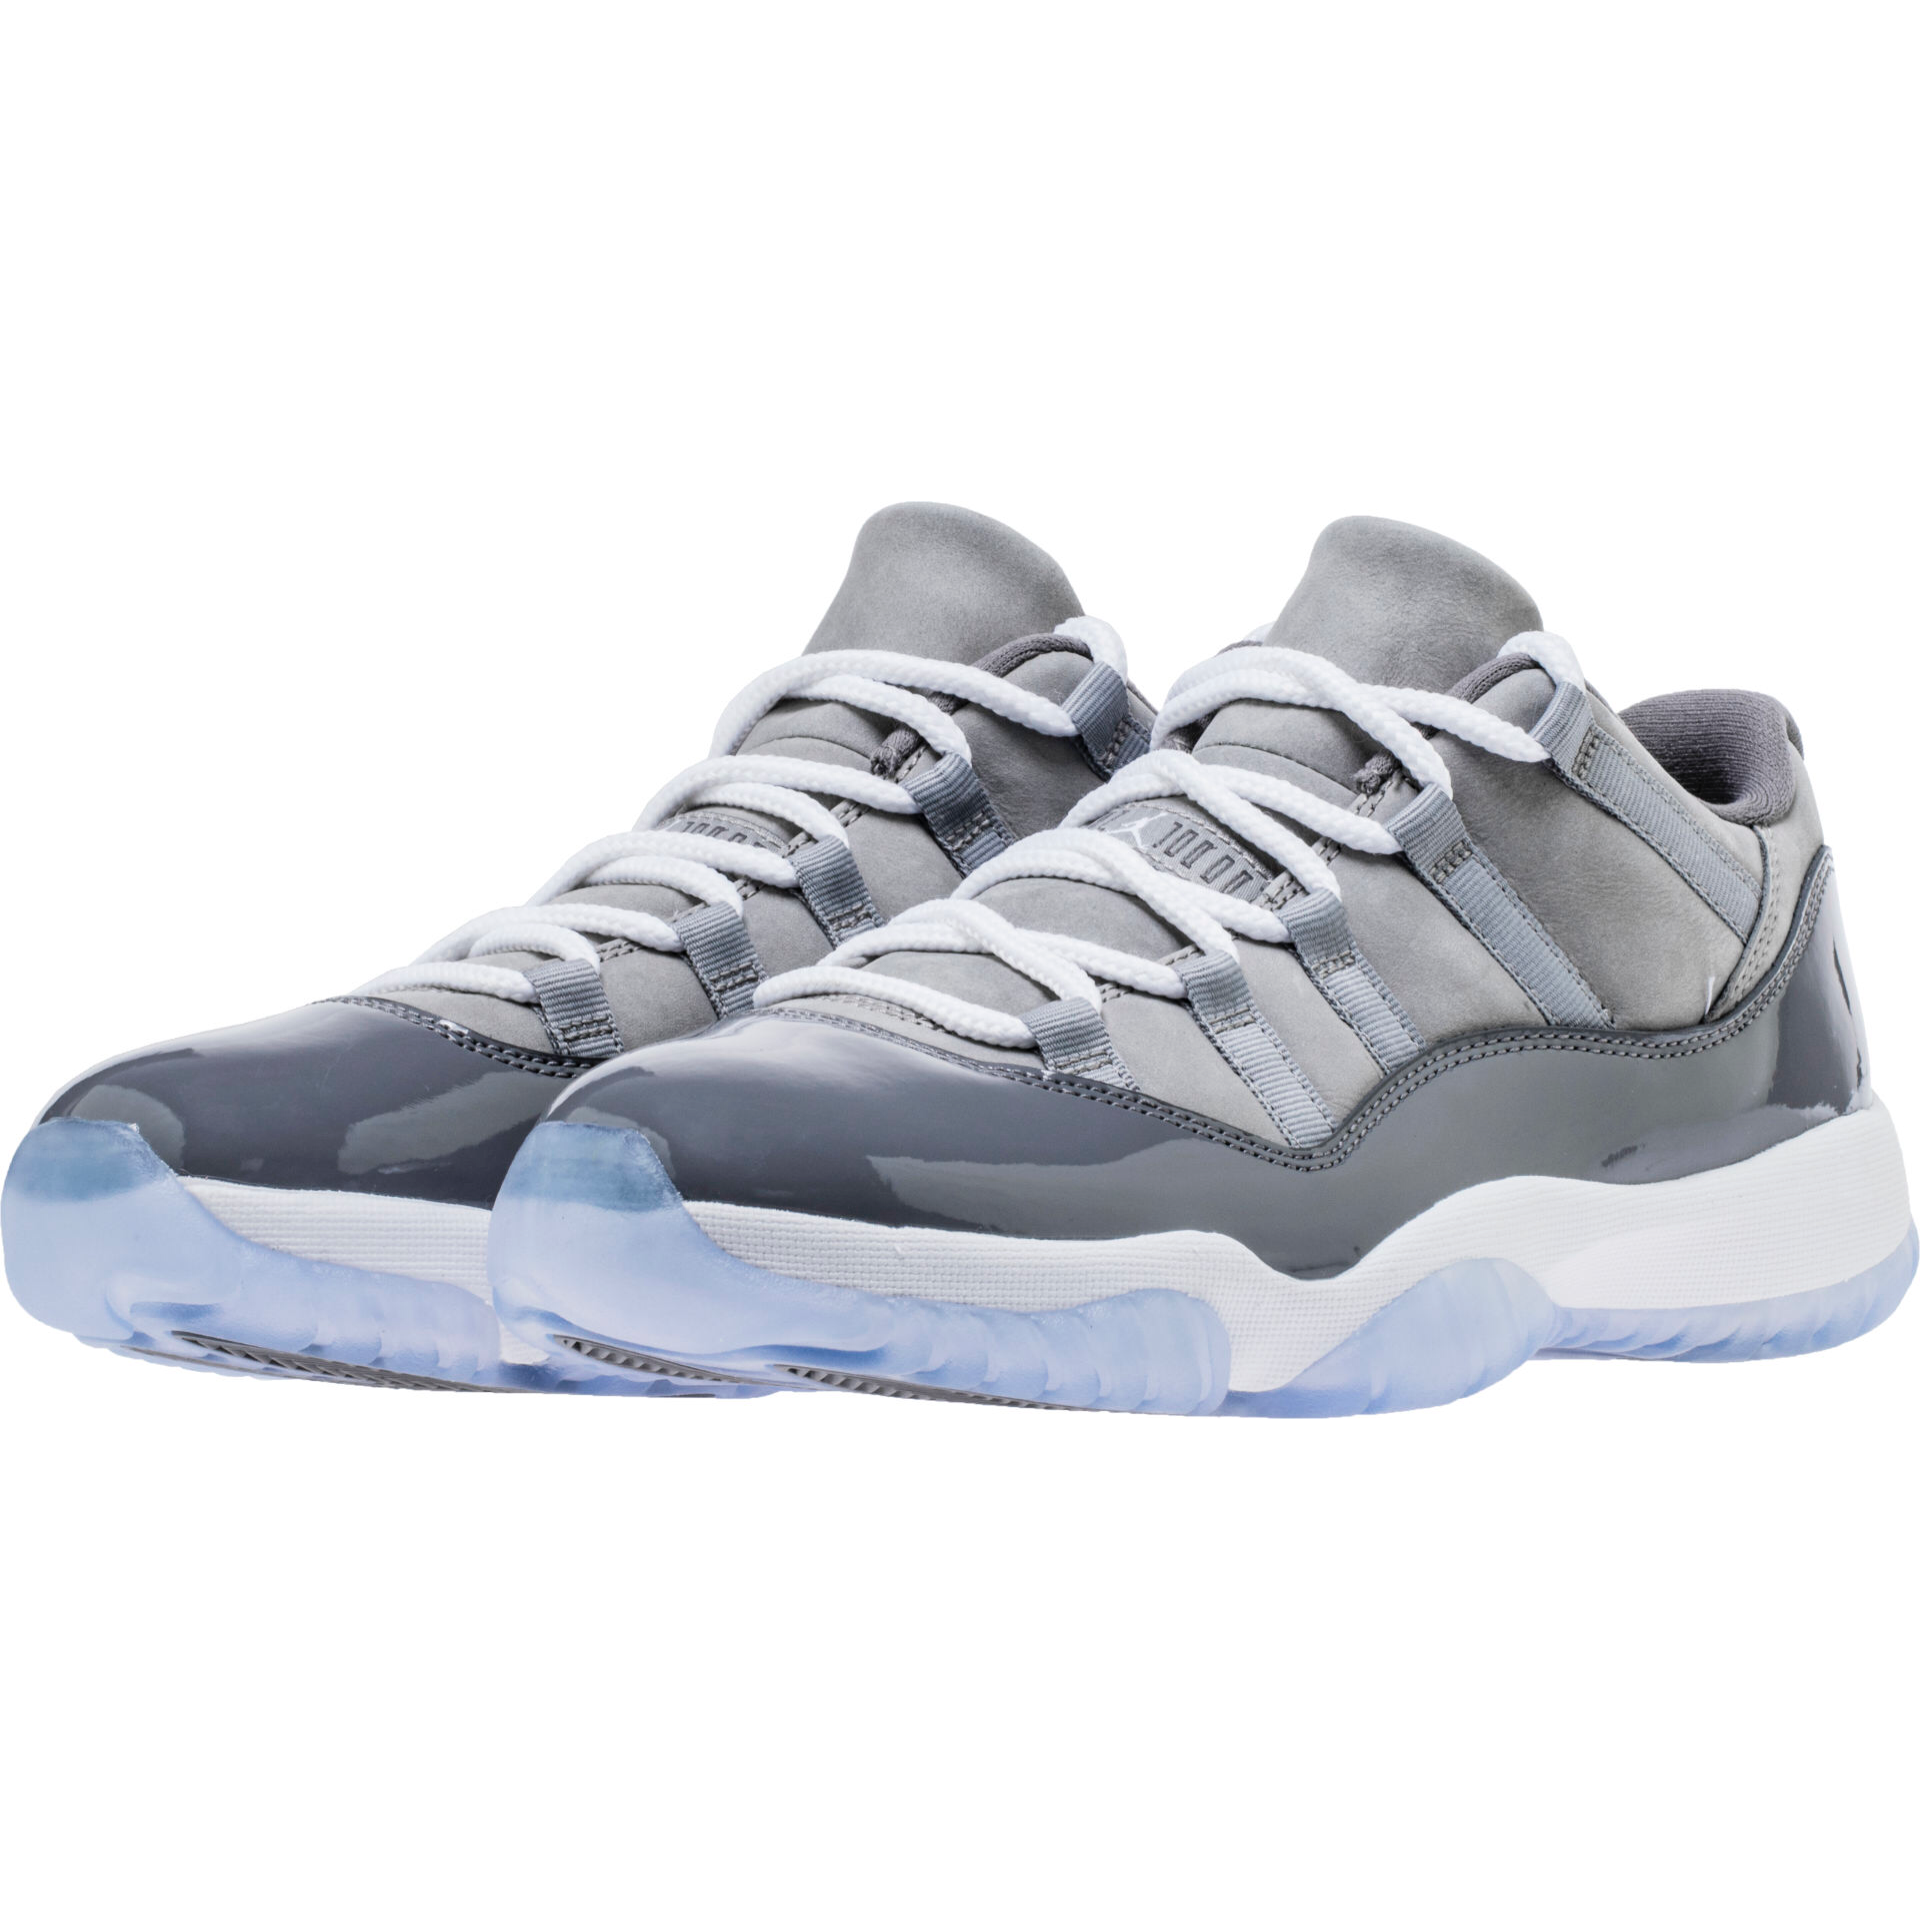 air jordan 11 low medium grey